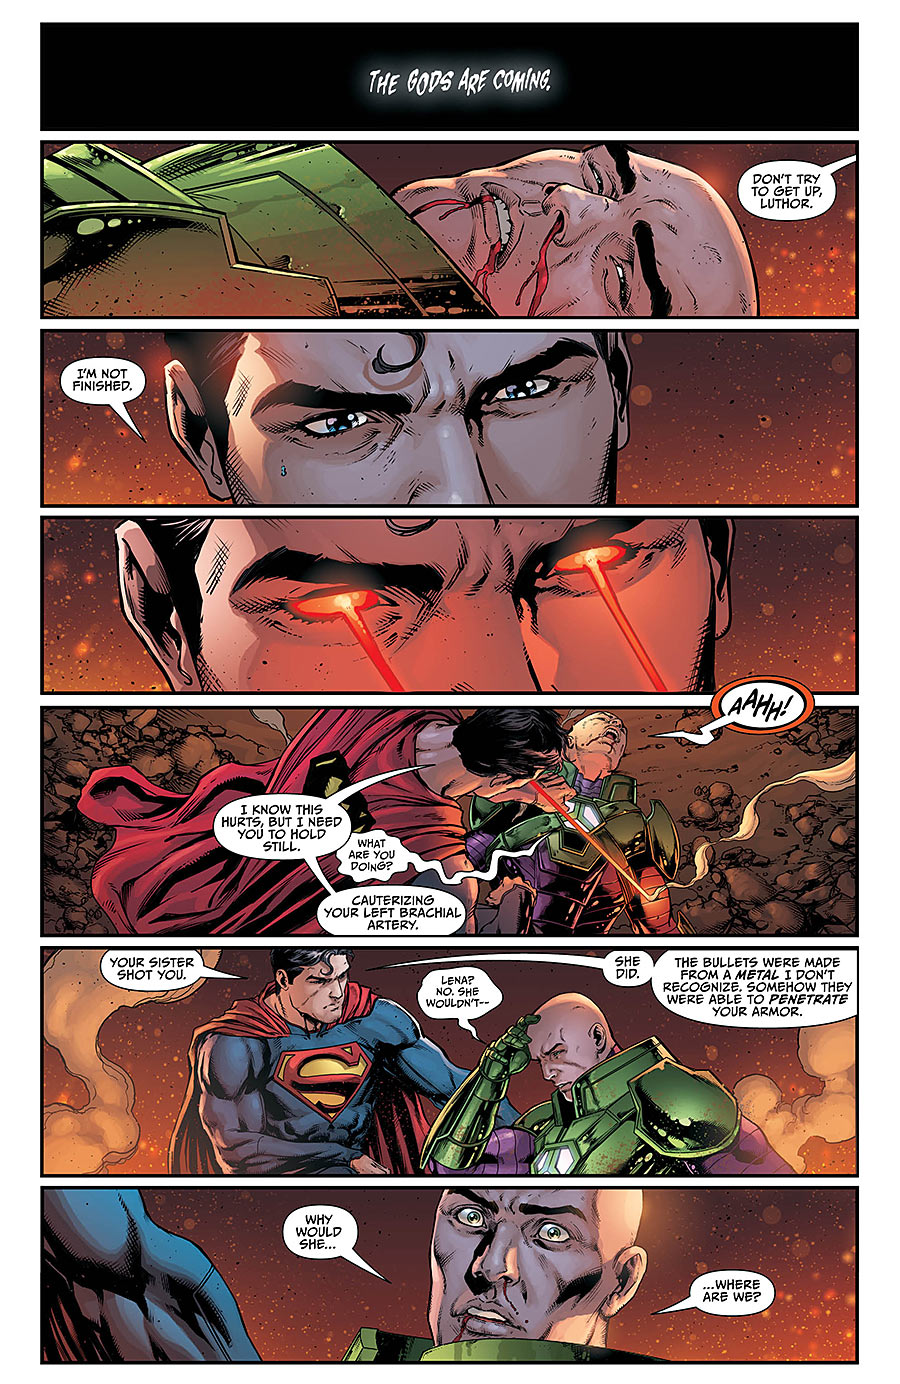 Justice League #42 Darkseid War 2 Spoilers Preview 3 ...